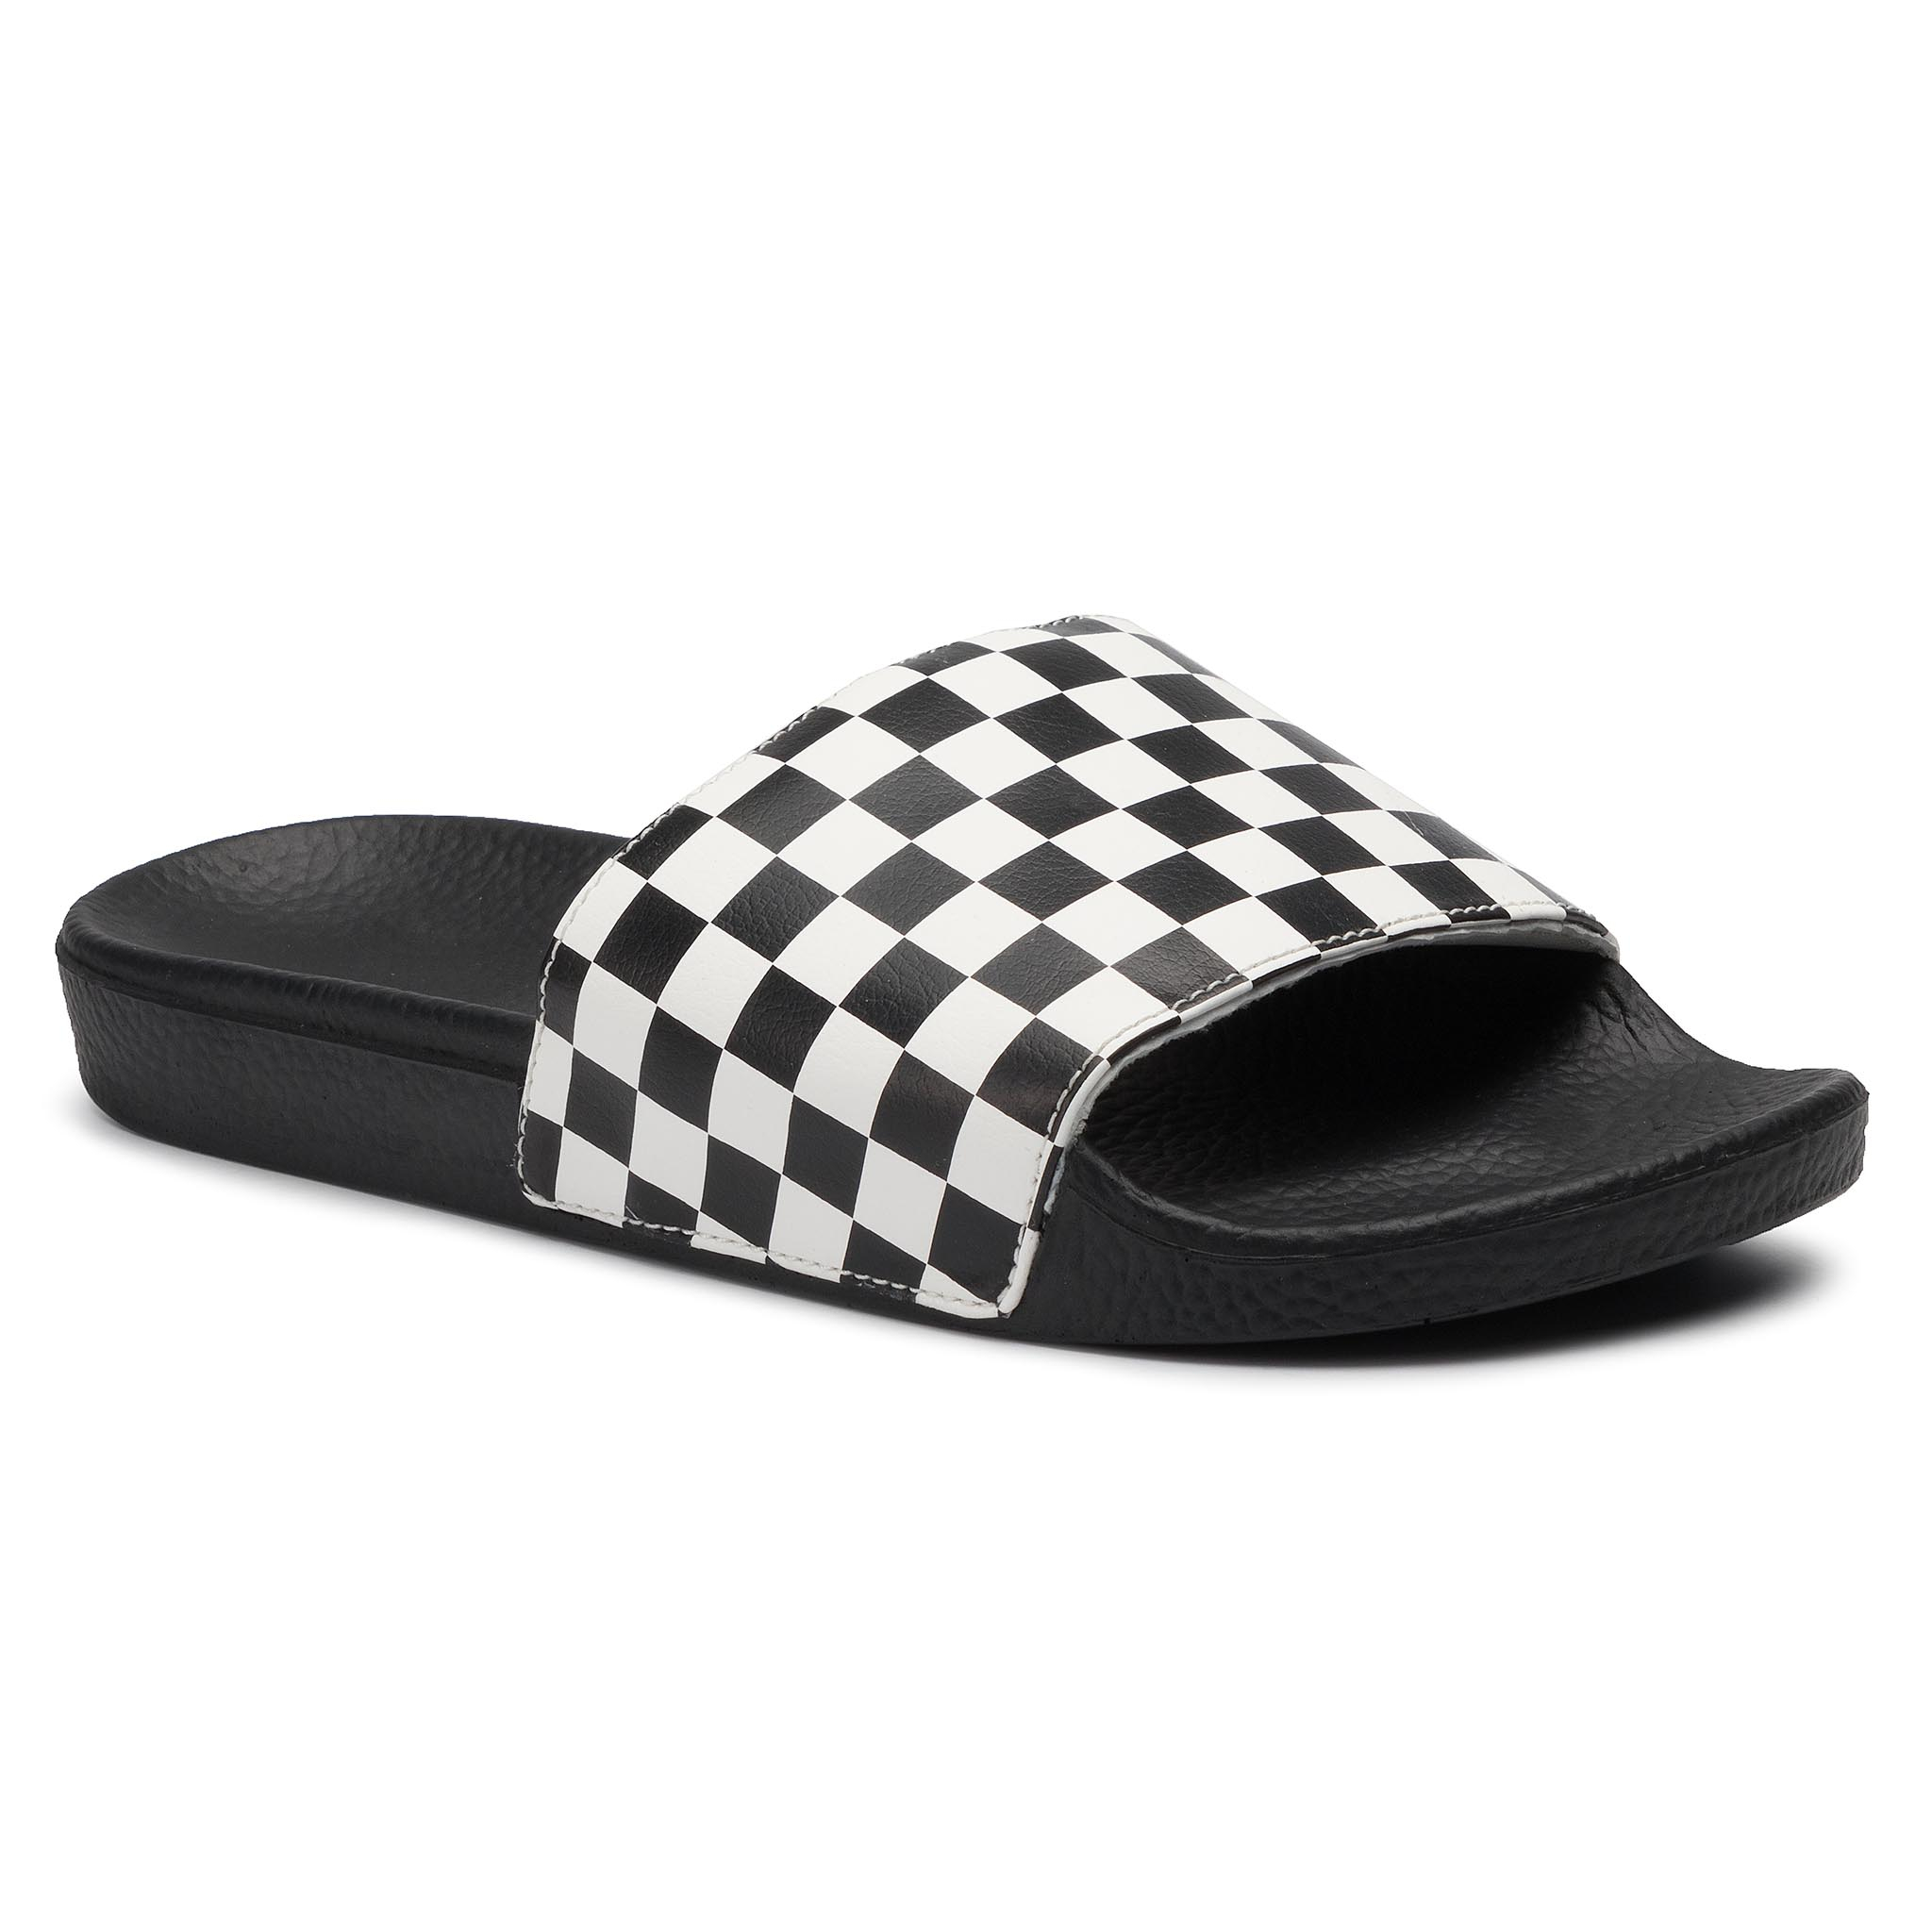 Mules / sandales de bain VANS - Slide-On VN0004KIIP91 (Checkerboard) White